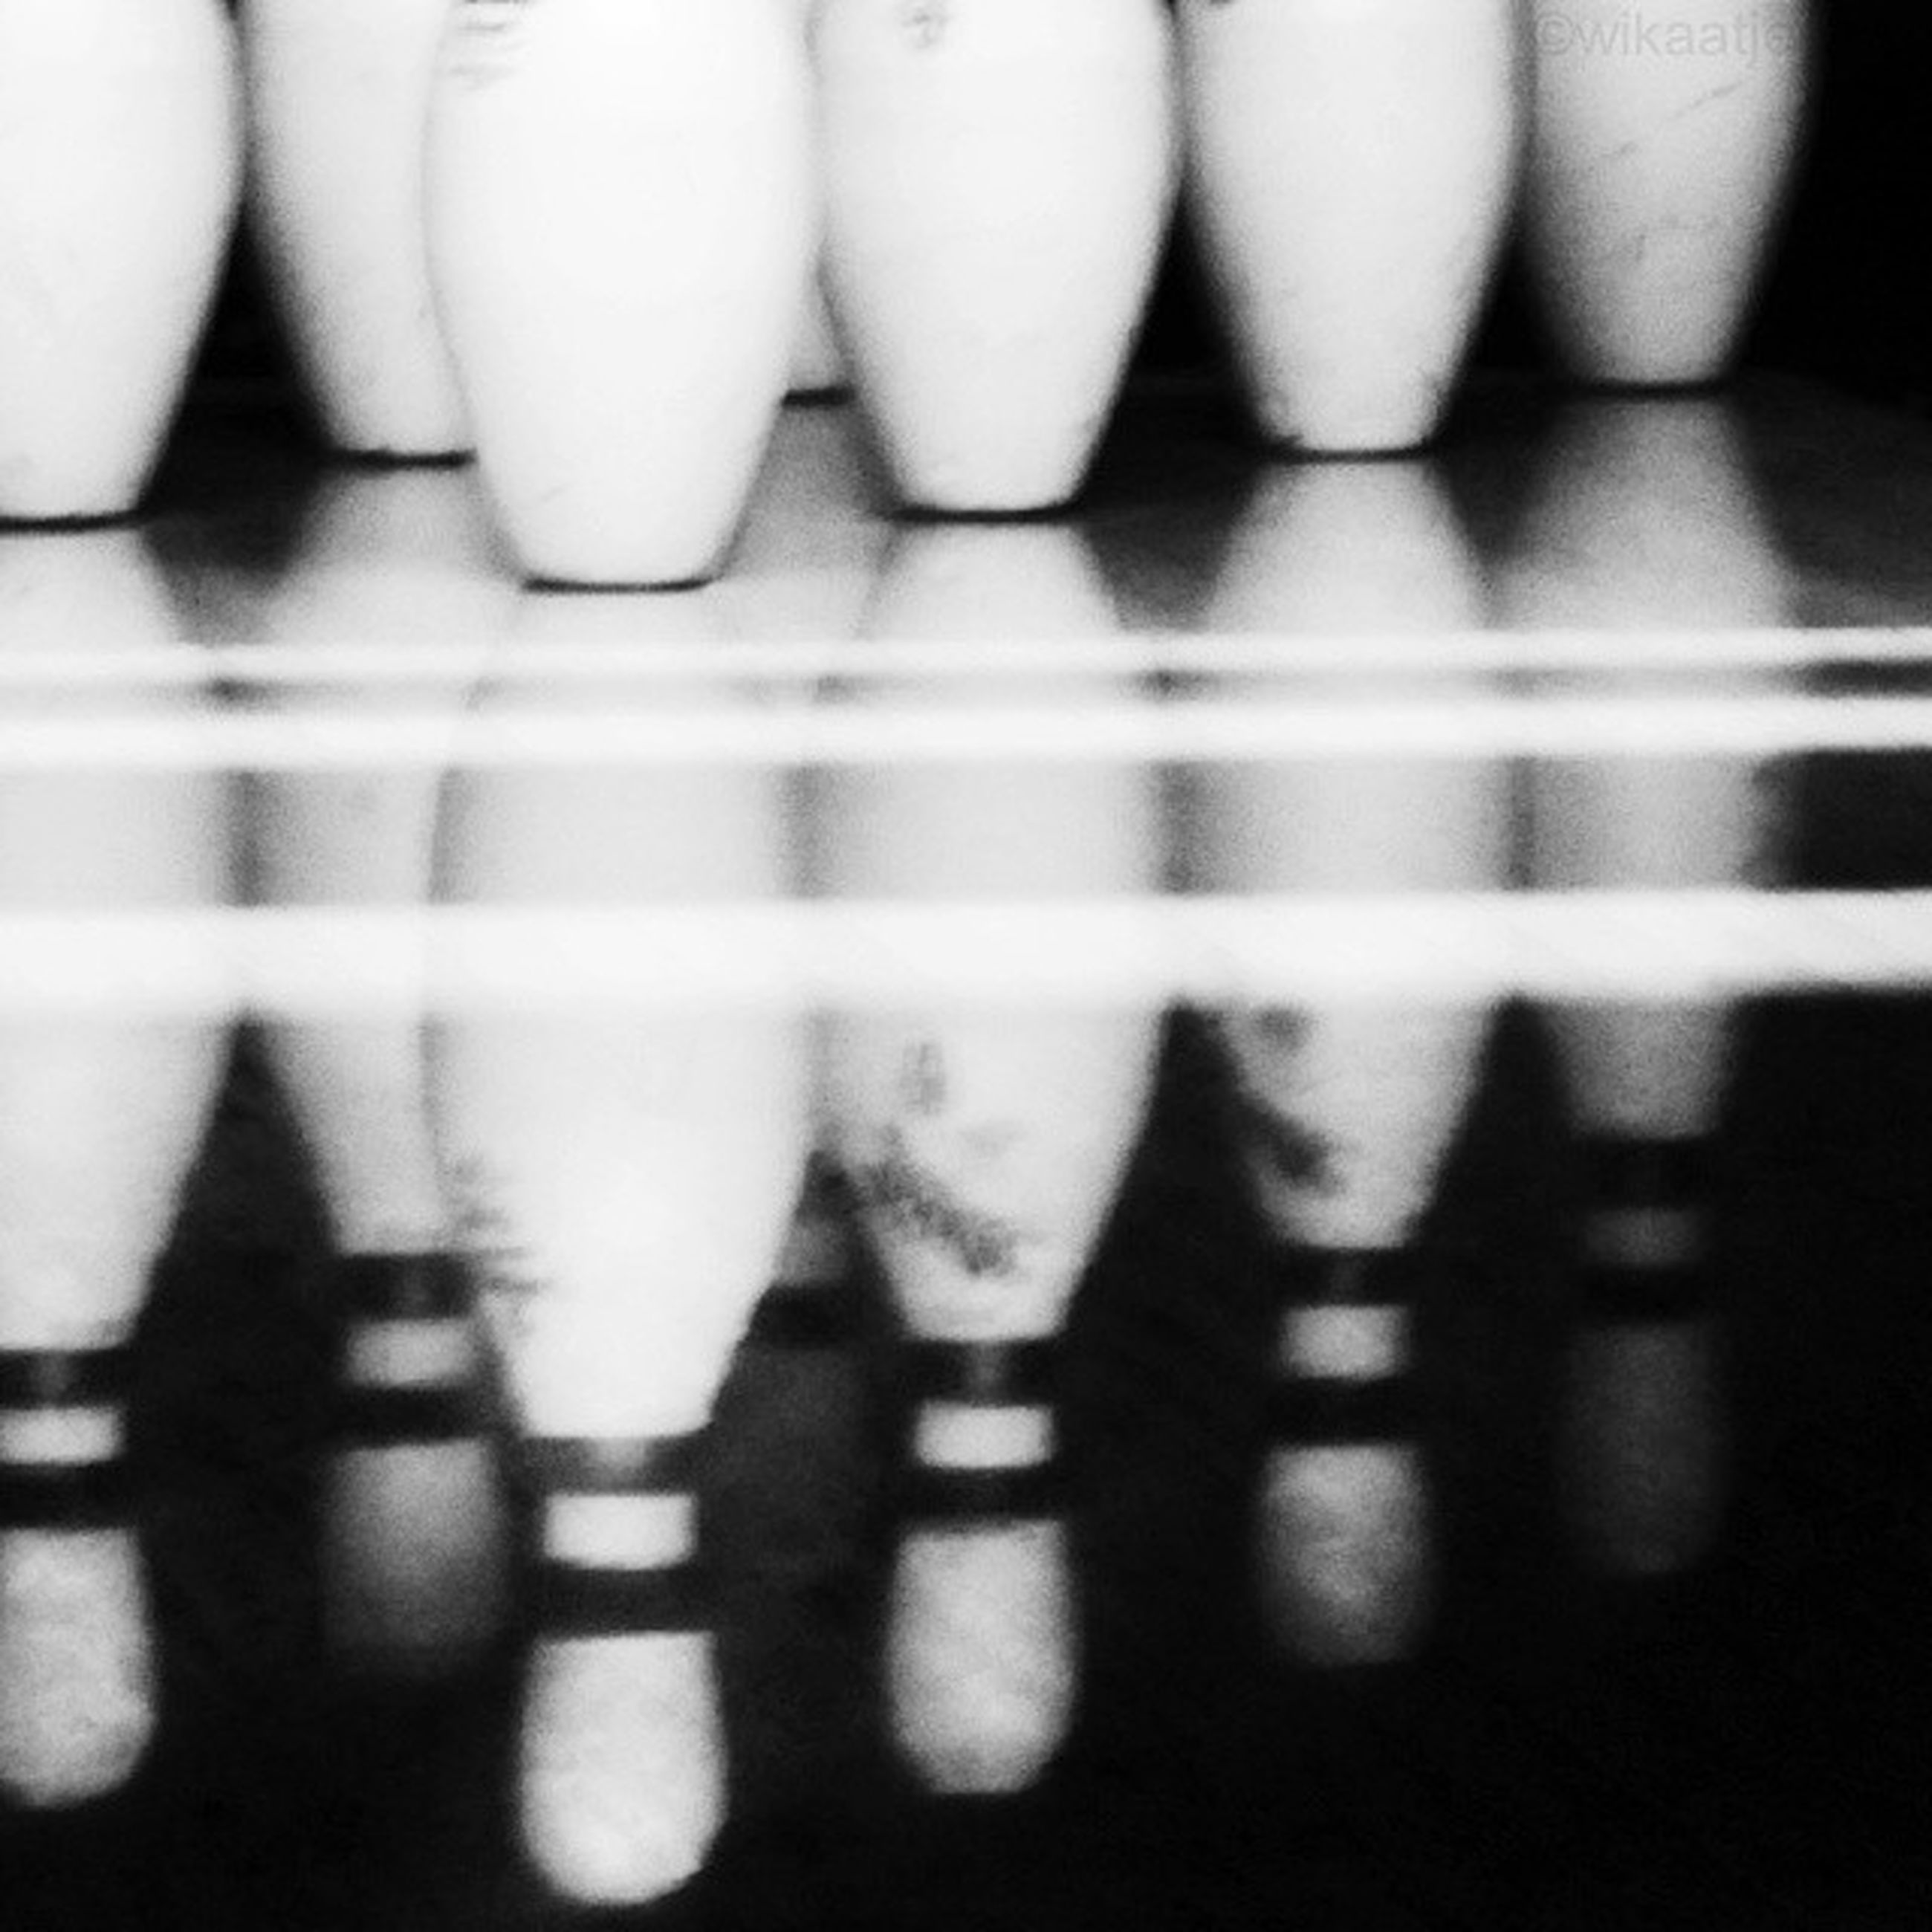 indoors, low section, person, lifestyles, standing, shoe, men, in a row, human foot, side by side, selective focus, flooring, choice, fashion, variation, large group of objects